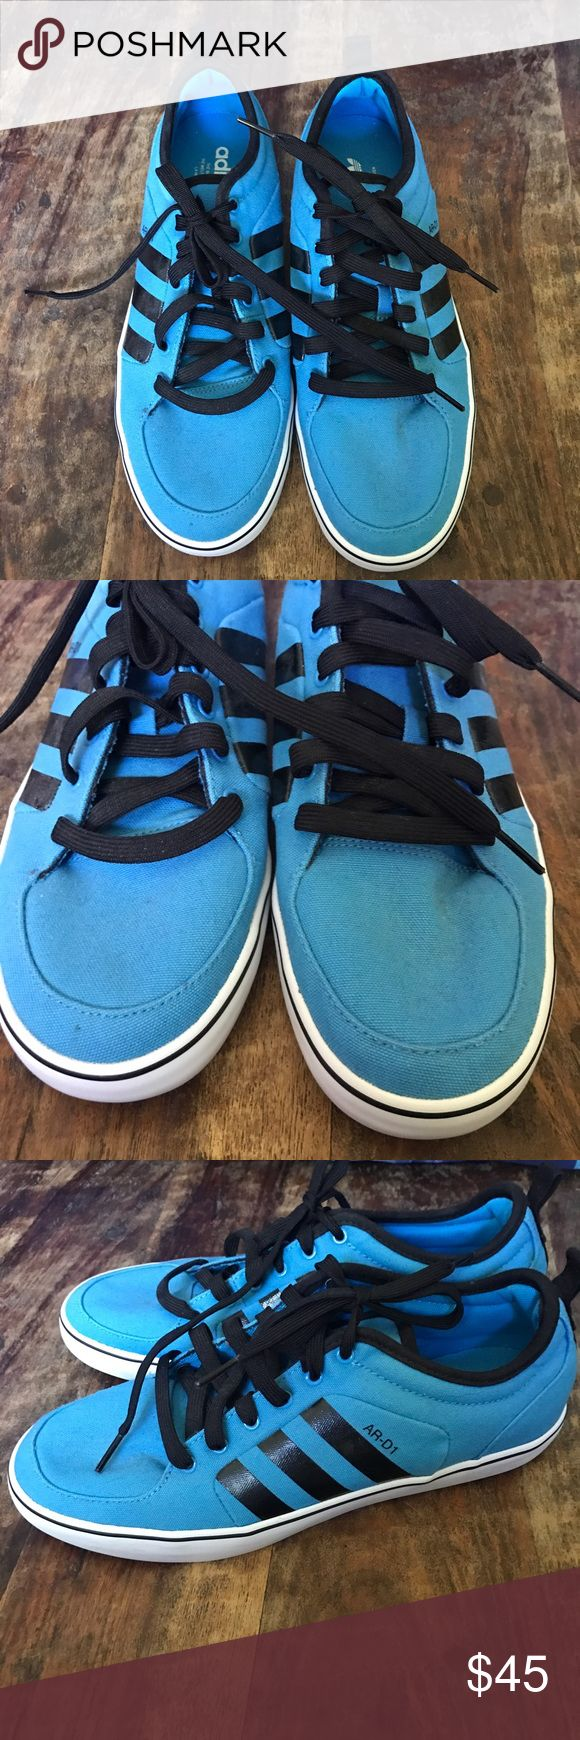 Adidas Men's Shoes Blue and black canvas Adidas shoes in excellent condition and super clean. adidas Shoes Sneakers